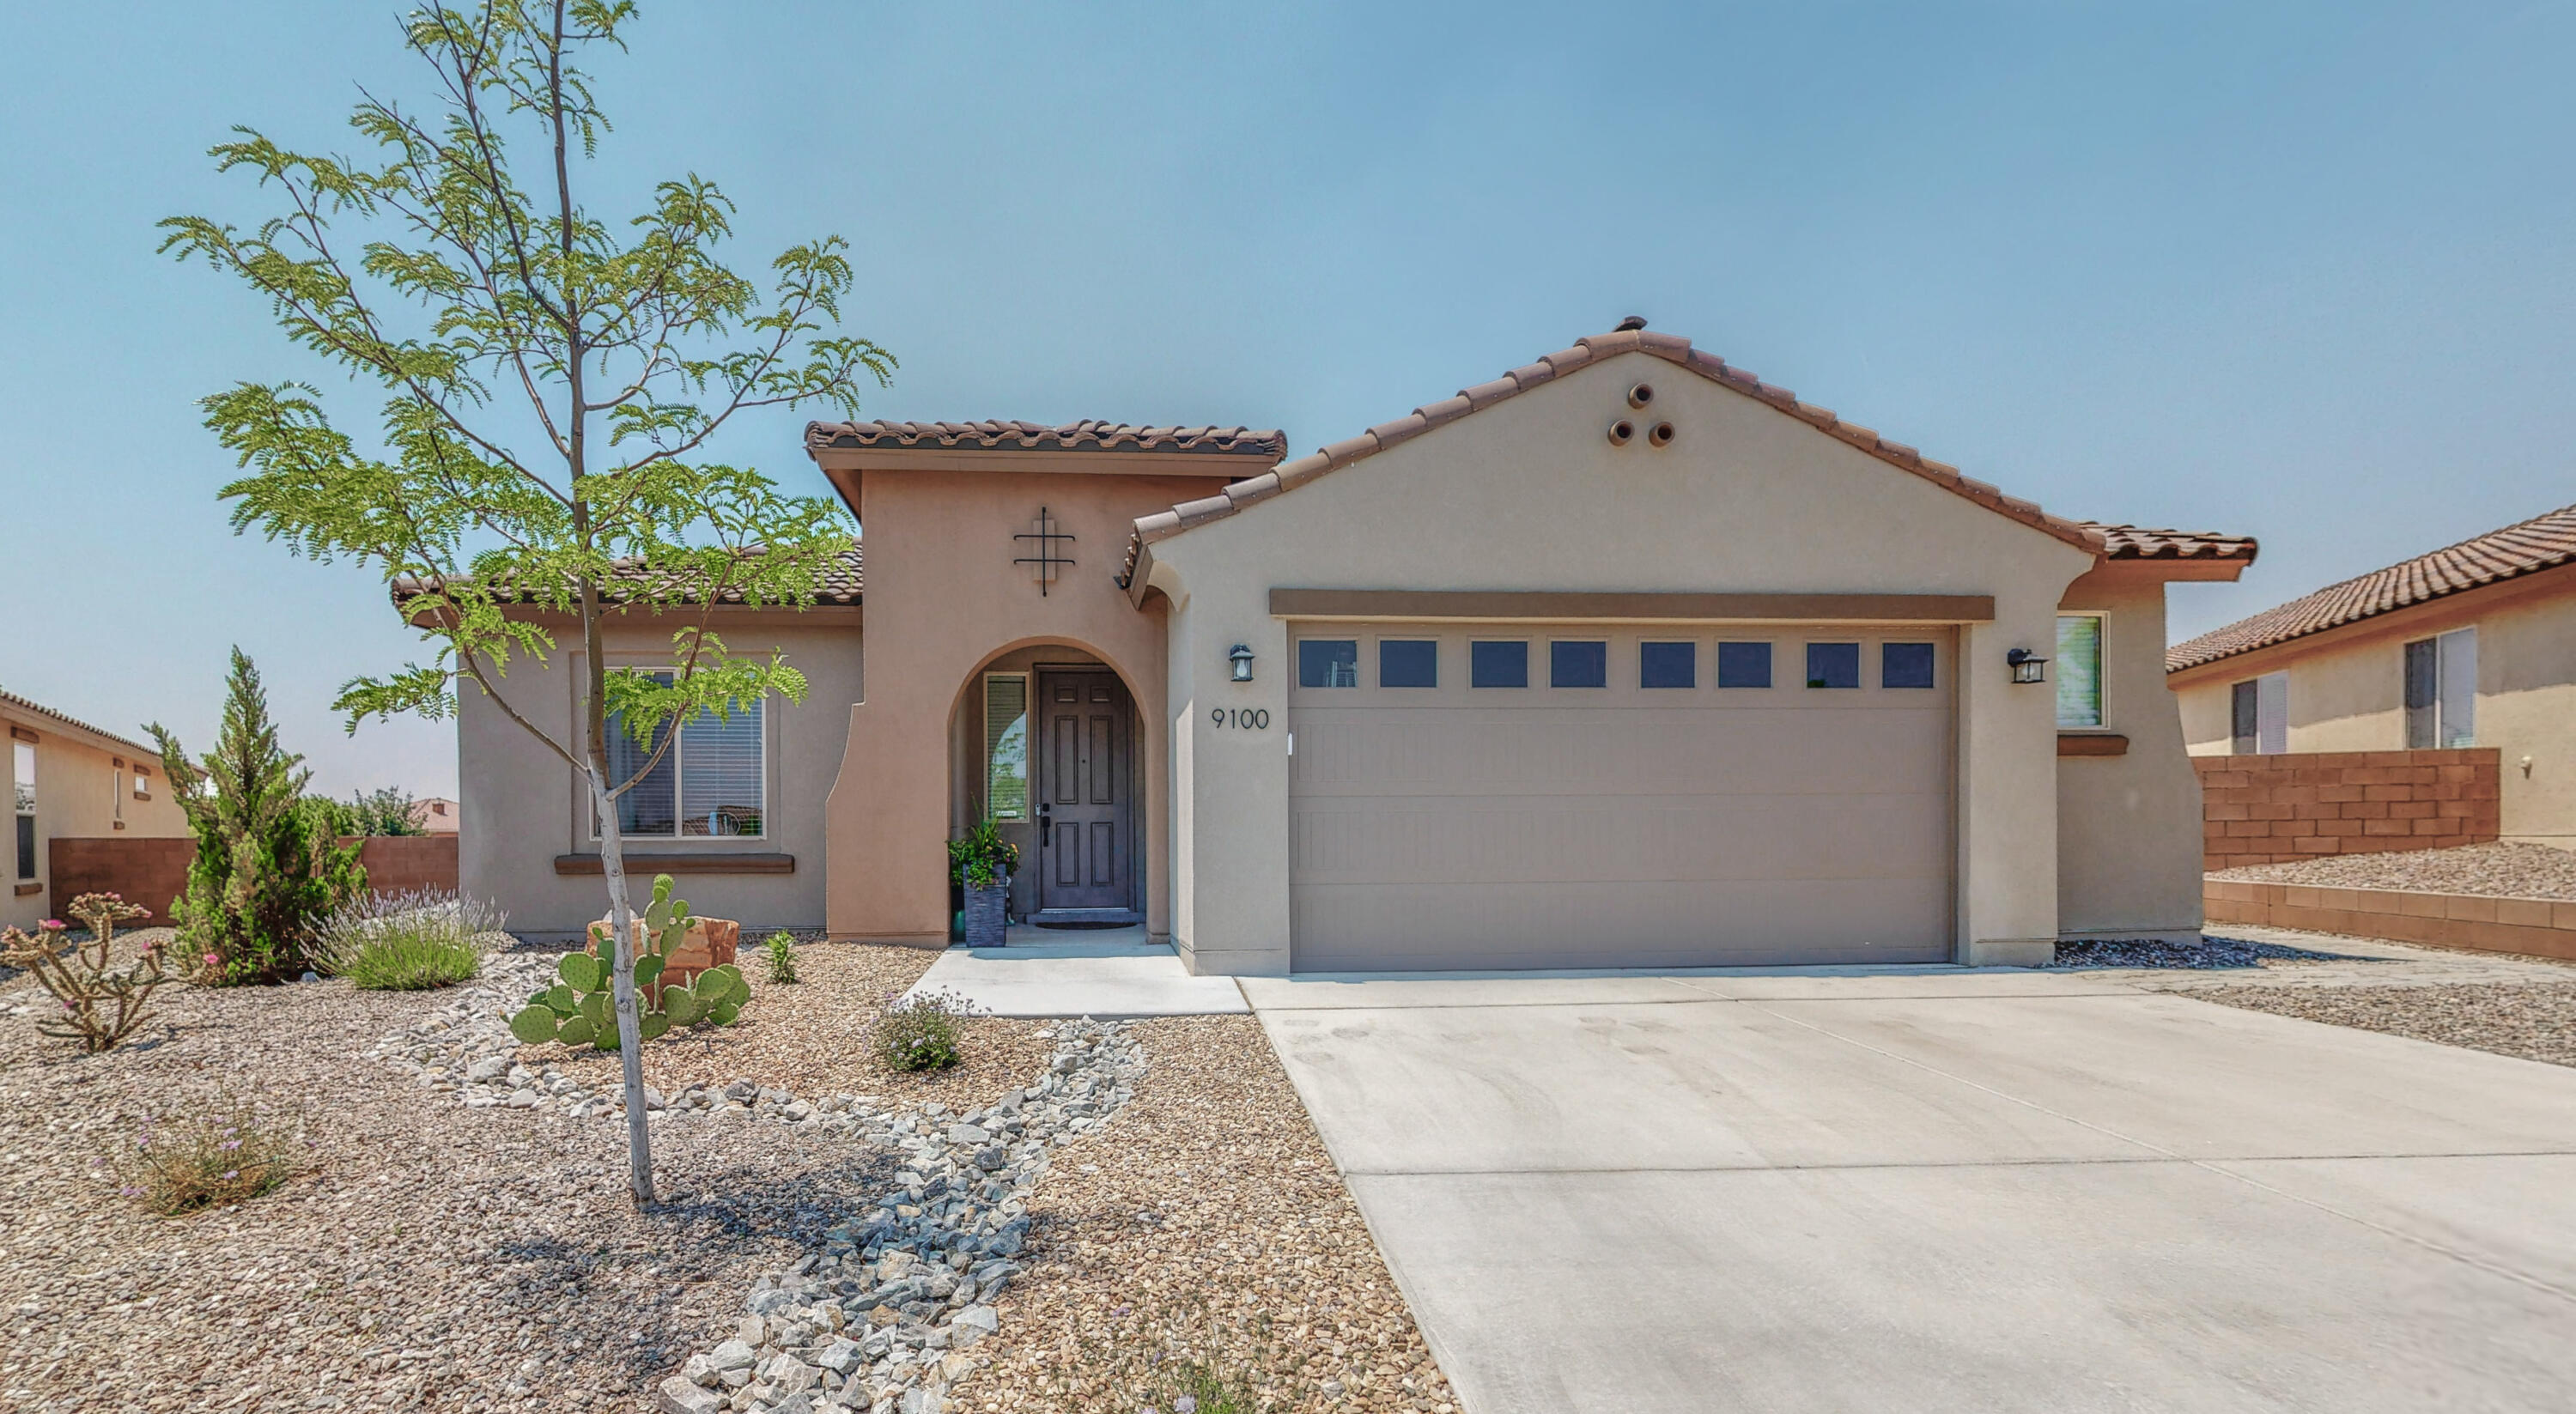 Amazing Pulte home in the highly sought after Mirehaven subdivision!! This property showcases a large open floor plan with superior craftsmanship and attention to fine detail. Chef kitchen boasts granite counter tops, center island, tile back splash and stainless appliances. Features 3 bedrooms, a home office and flex space! Custom walk in Master shower! Wood tile flooring! Oversized patio doors open the house to the tastefully landscaped back yard with covered patio providing the perfect stage for entertaining and family fun. Hot tub! In ground trampoline! Amazing views! Oversized Lot! Close proximity to parks, walking trails and amenities. Silver rated green home! Tank less hot water heater! Refrigerated air! Service room sink! Solar! Call a Realtor today to schedule a private showing.